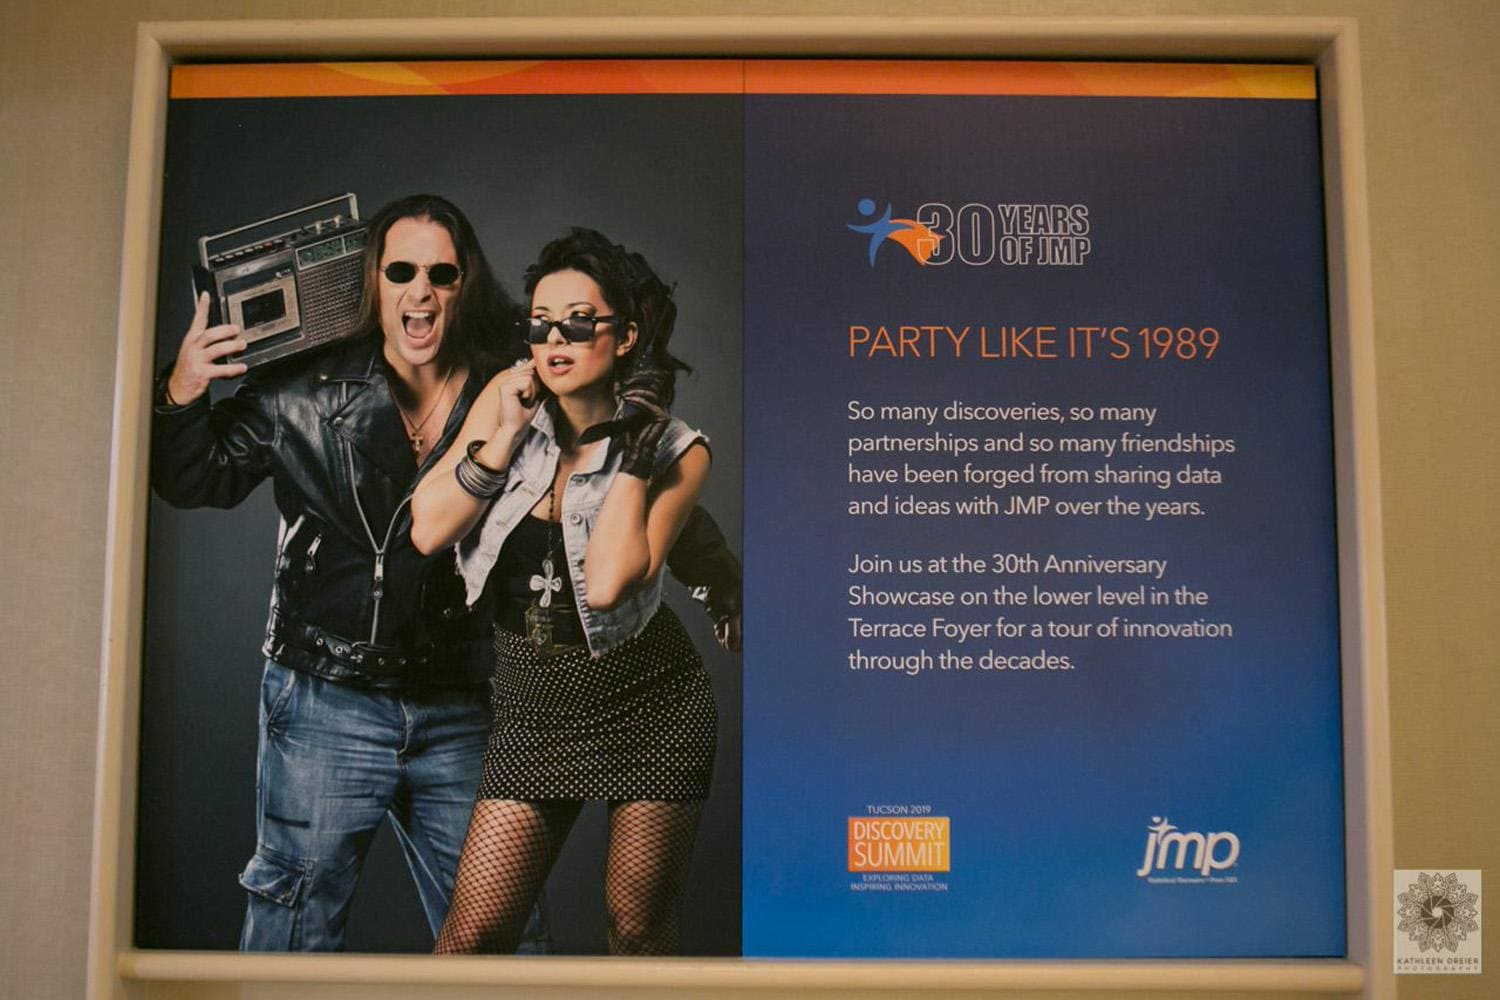 Party Like it 1989 display